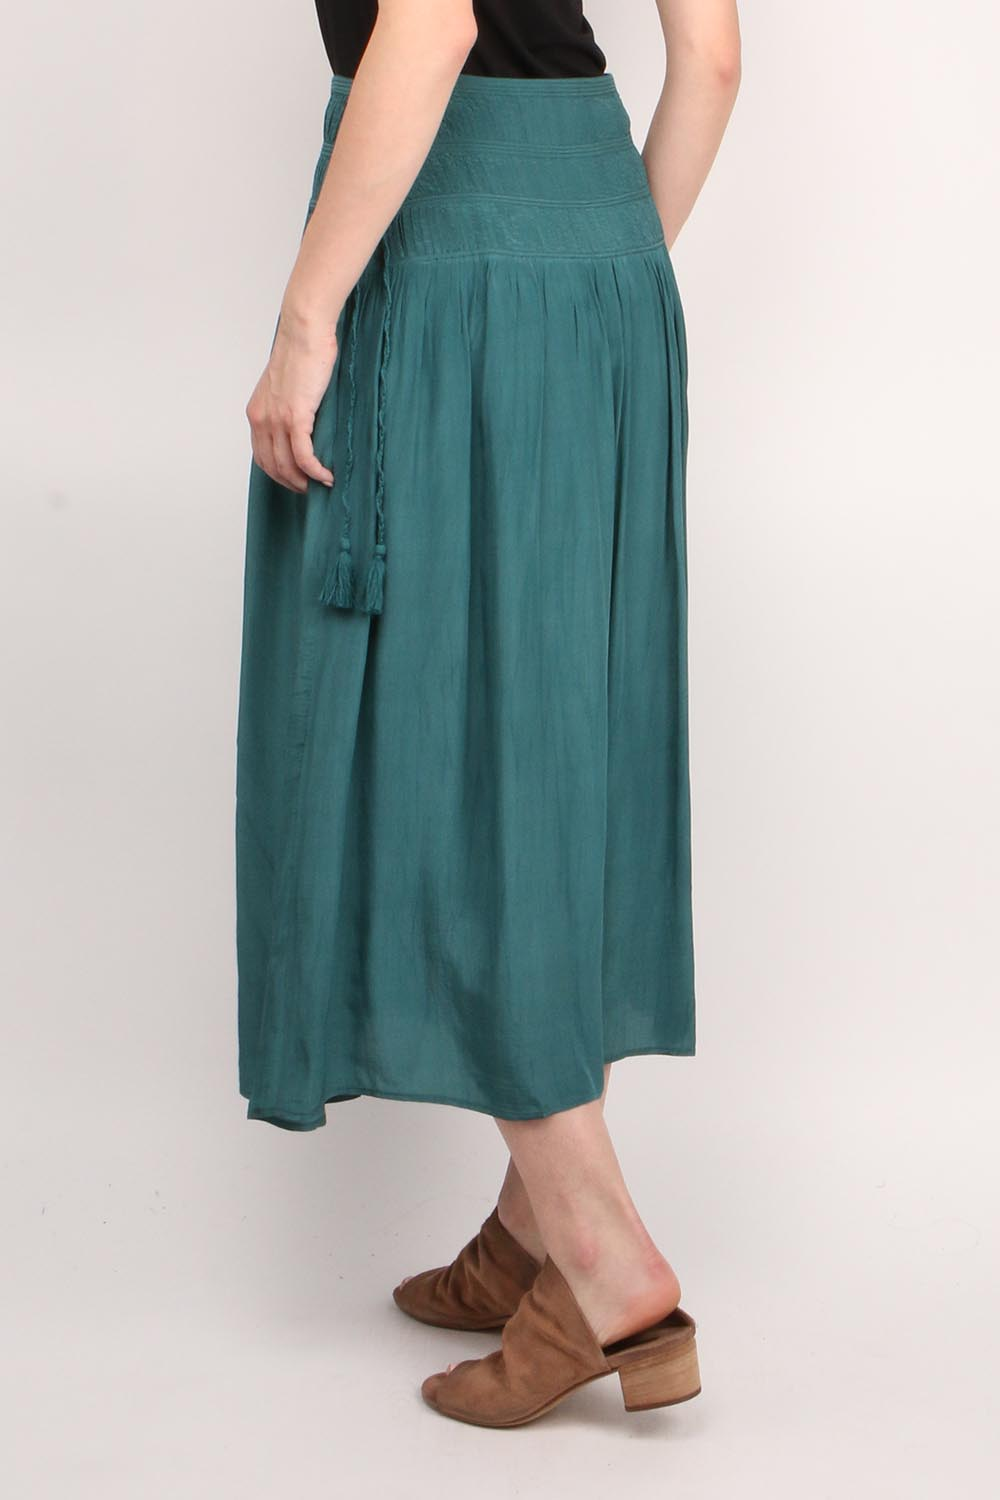 Hemmingway Pleated Skirt